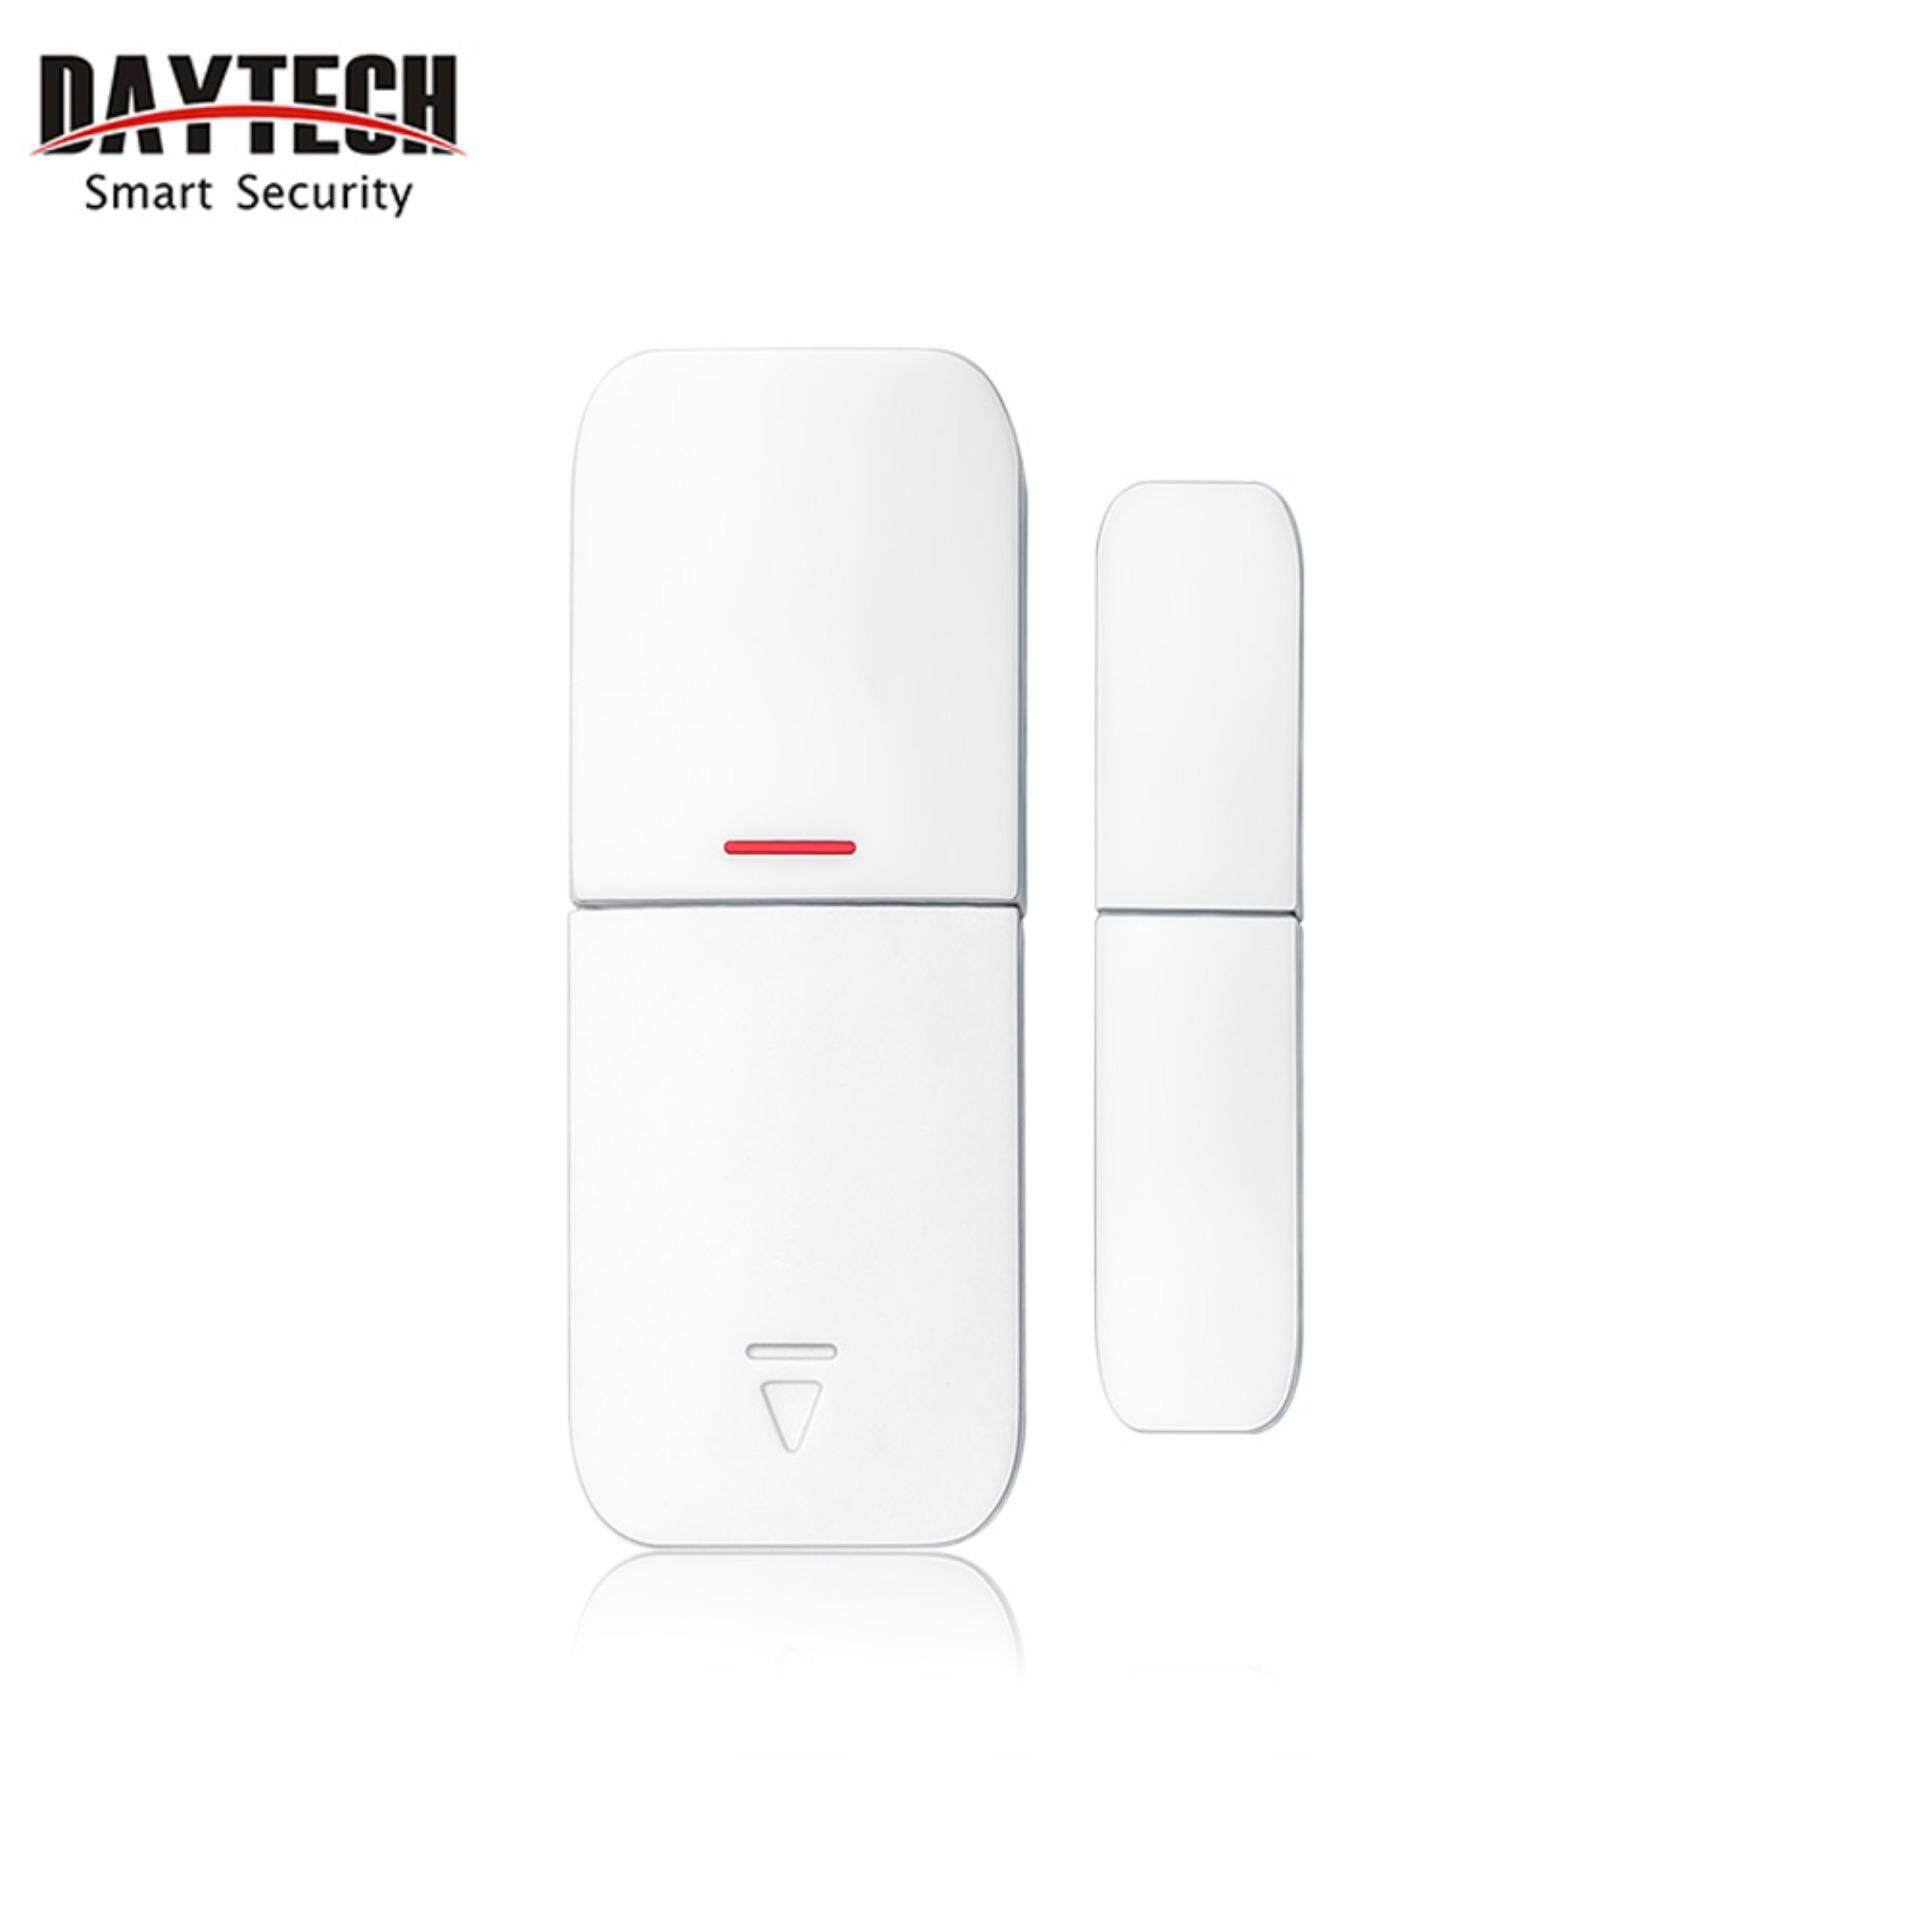 Daytech Buy At Best Price In Malaysia Doorbell Wiring Diagram Two Chimes Household Security Systems